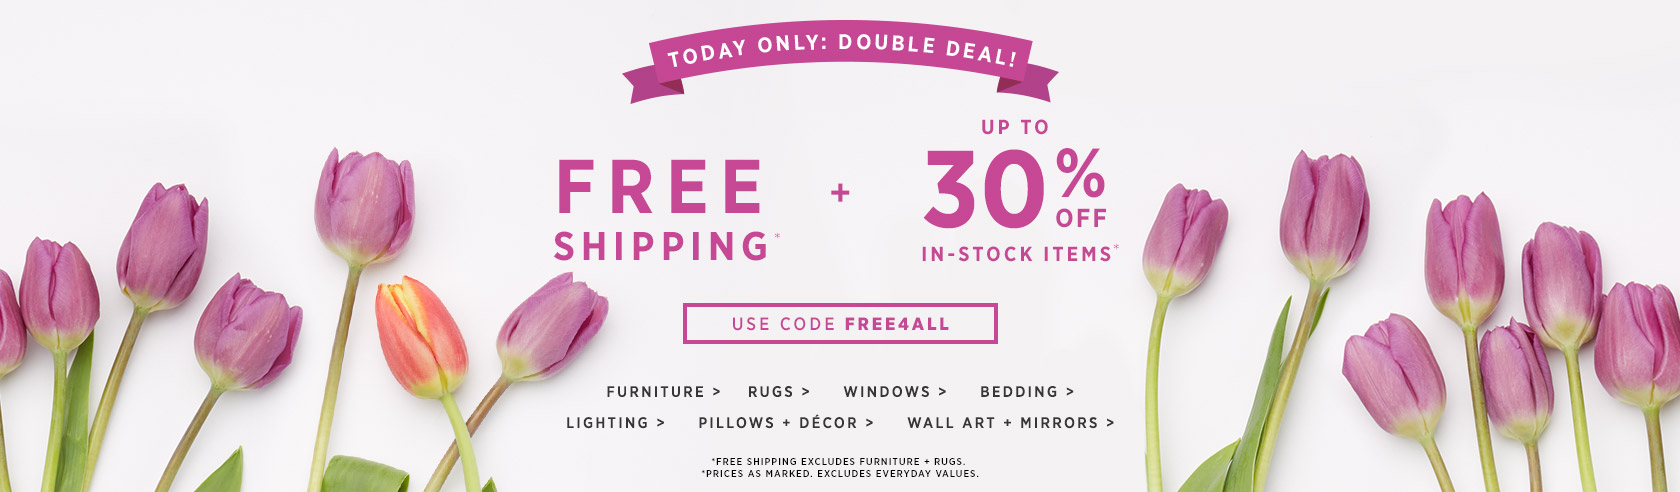 Up To 30% Off In-Stock Items + Free Shipping With Code FREE4ALL. Exclusions Apply.